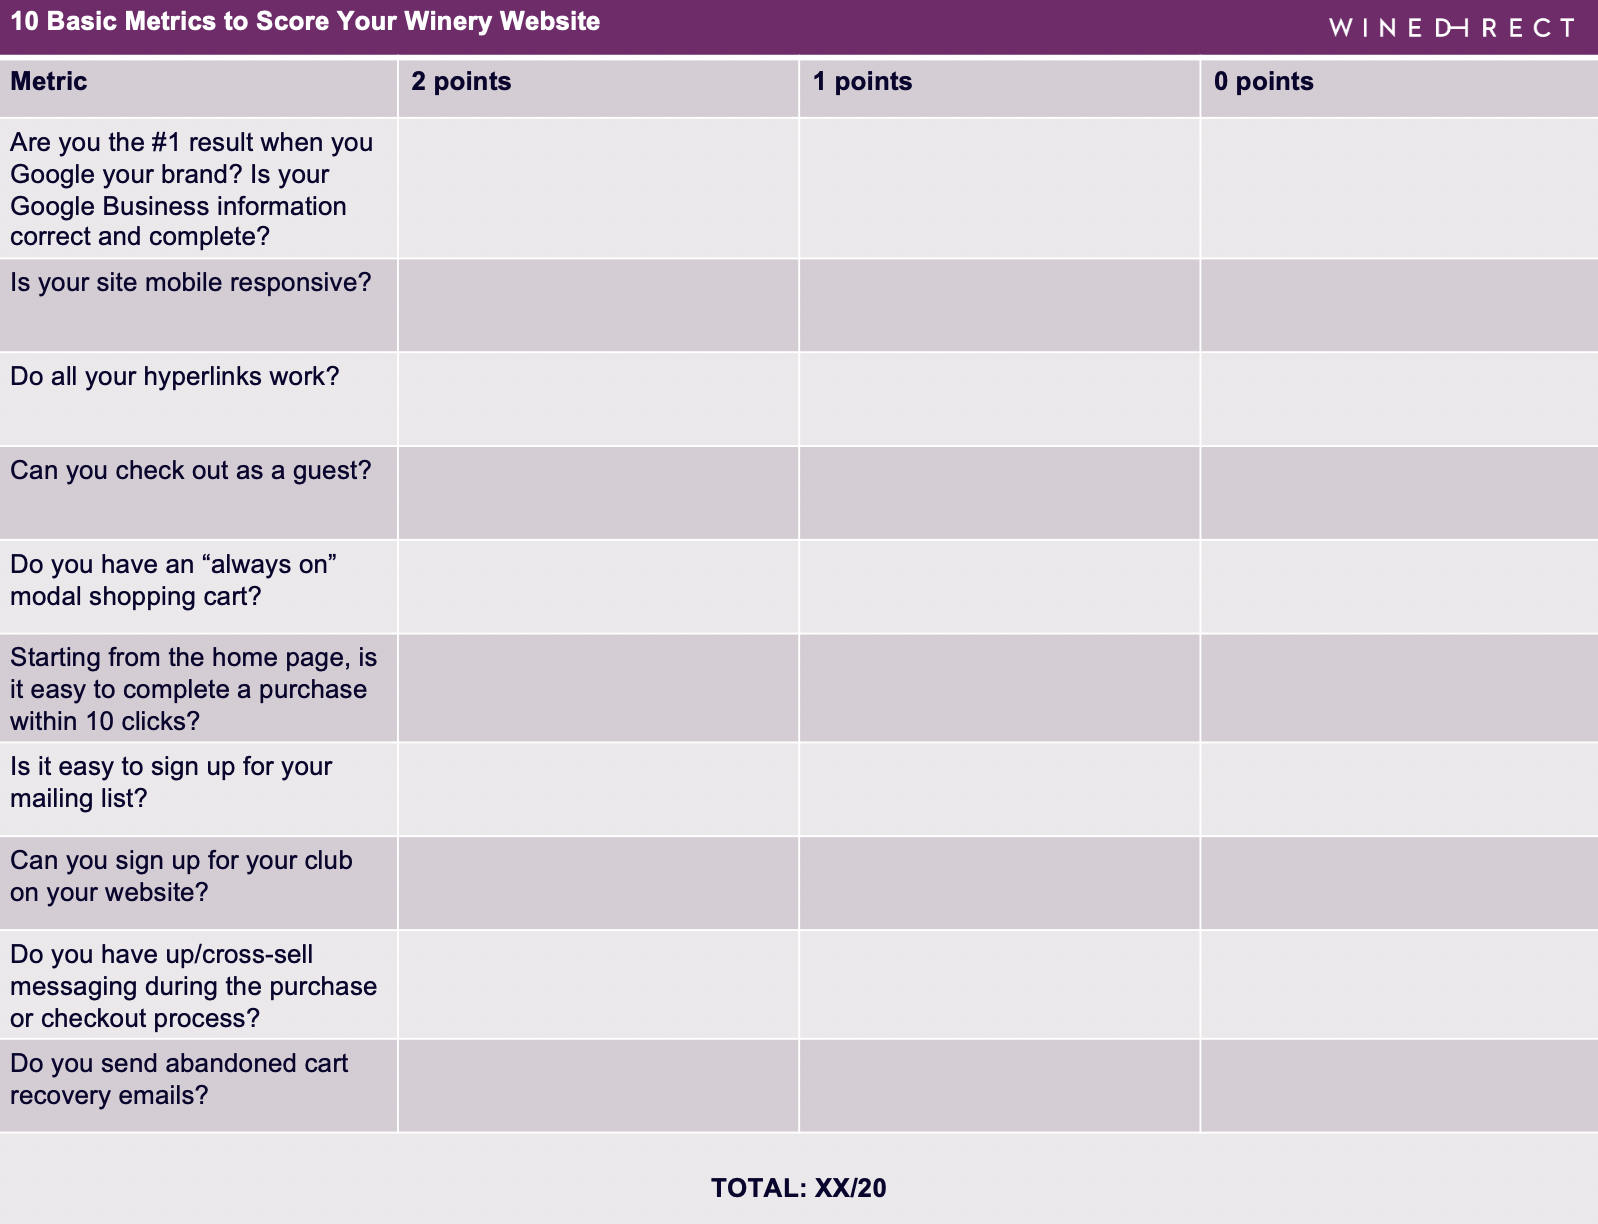 Website-checklist-chart-WineDirect.png#asset:9843